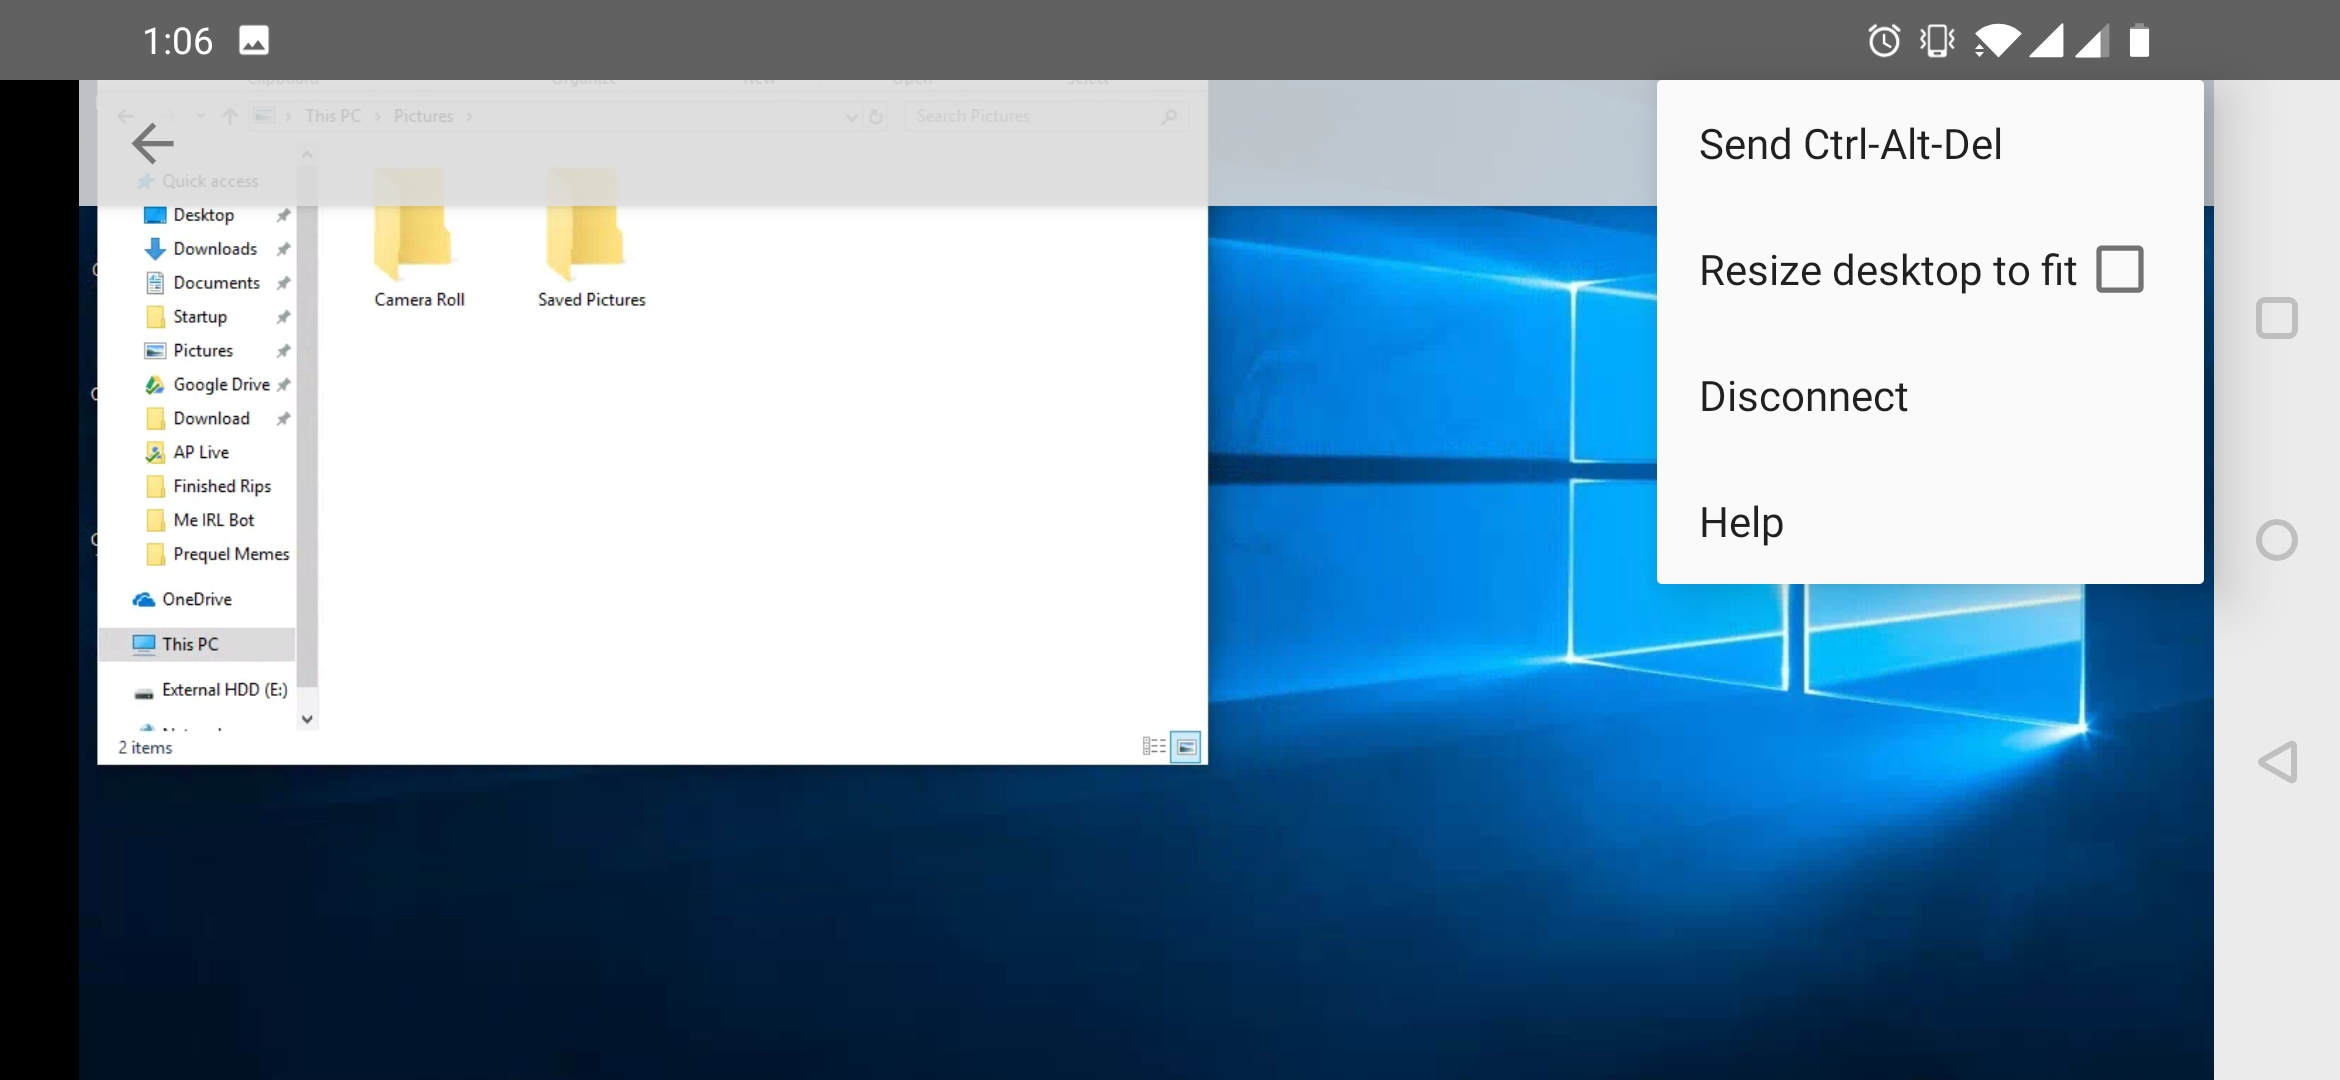 Chrome Remote Desktop v71 adds non-functional display resize feature